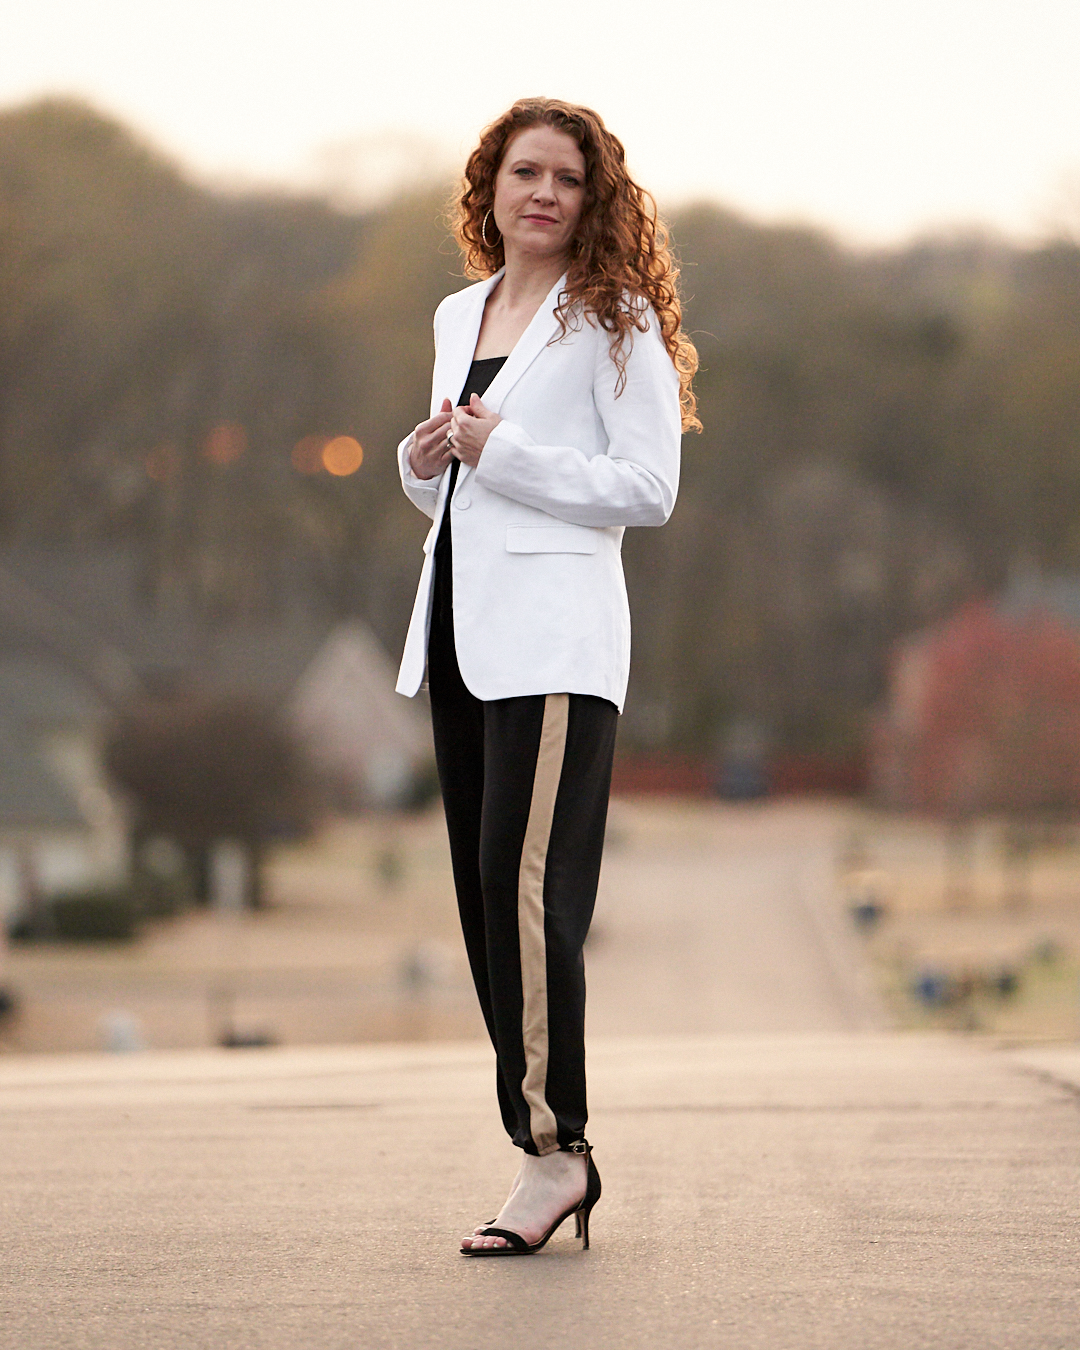 Styled jumpsuit with white blazer and black high heels and gold hoop earrings